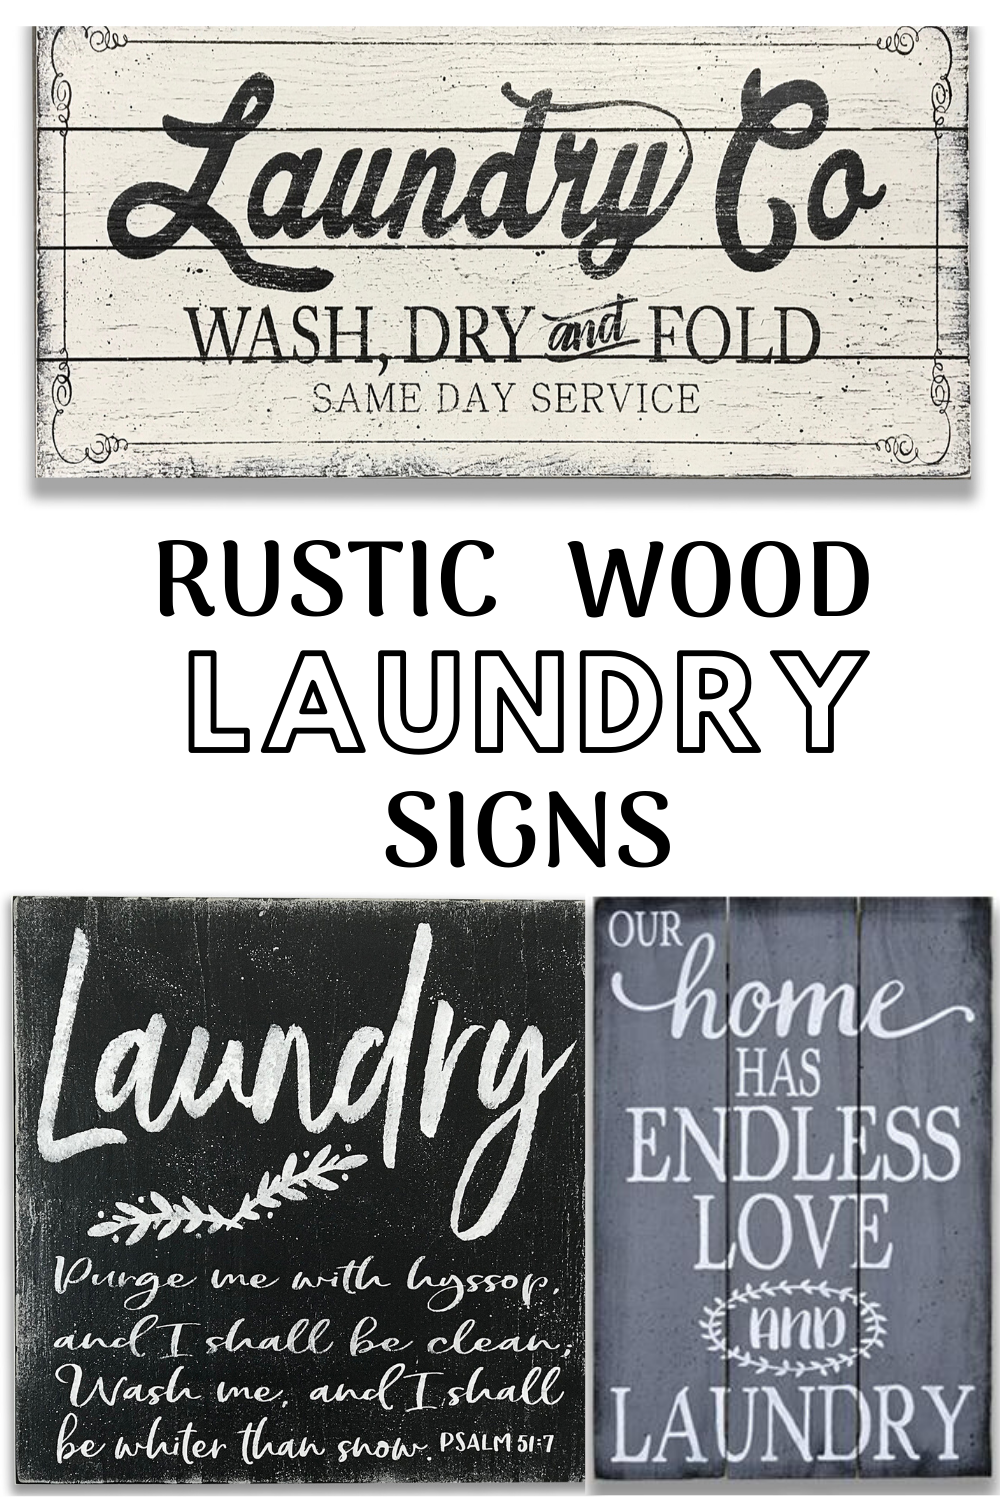 Rustic Wood Laundry Signs In 2020 Laundry Room Wall Decor Wood Laundry Sign Rustic Wood Wall Decor